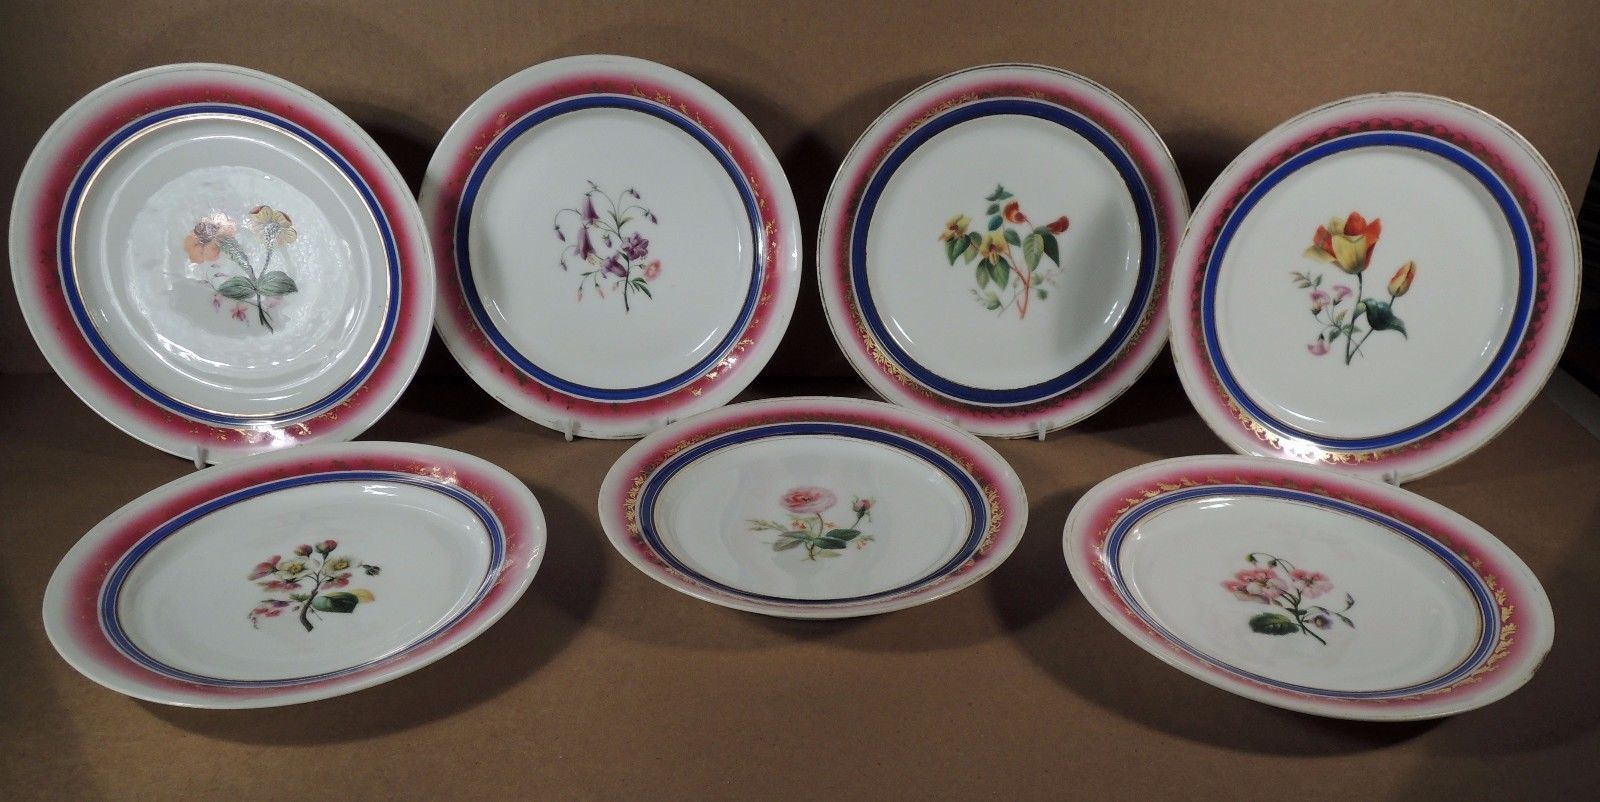 """#Antiques #Gifts 7 LARGE ANTIQUE FRENCH OLD PARIS PORCELAIN DESSERT OR LUNCHEON PLATES 8 ¼"""" #Collectors"""